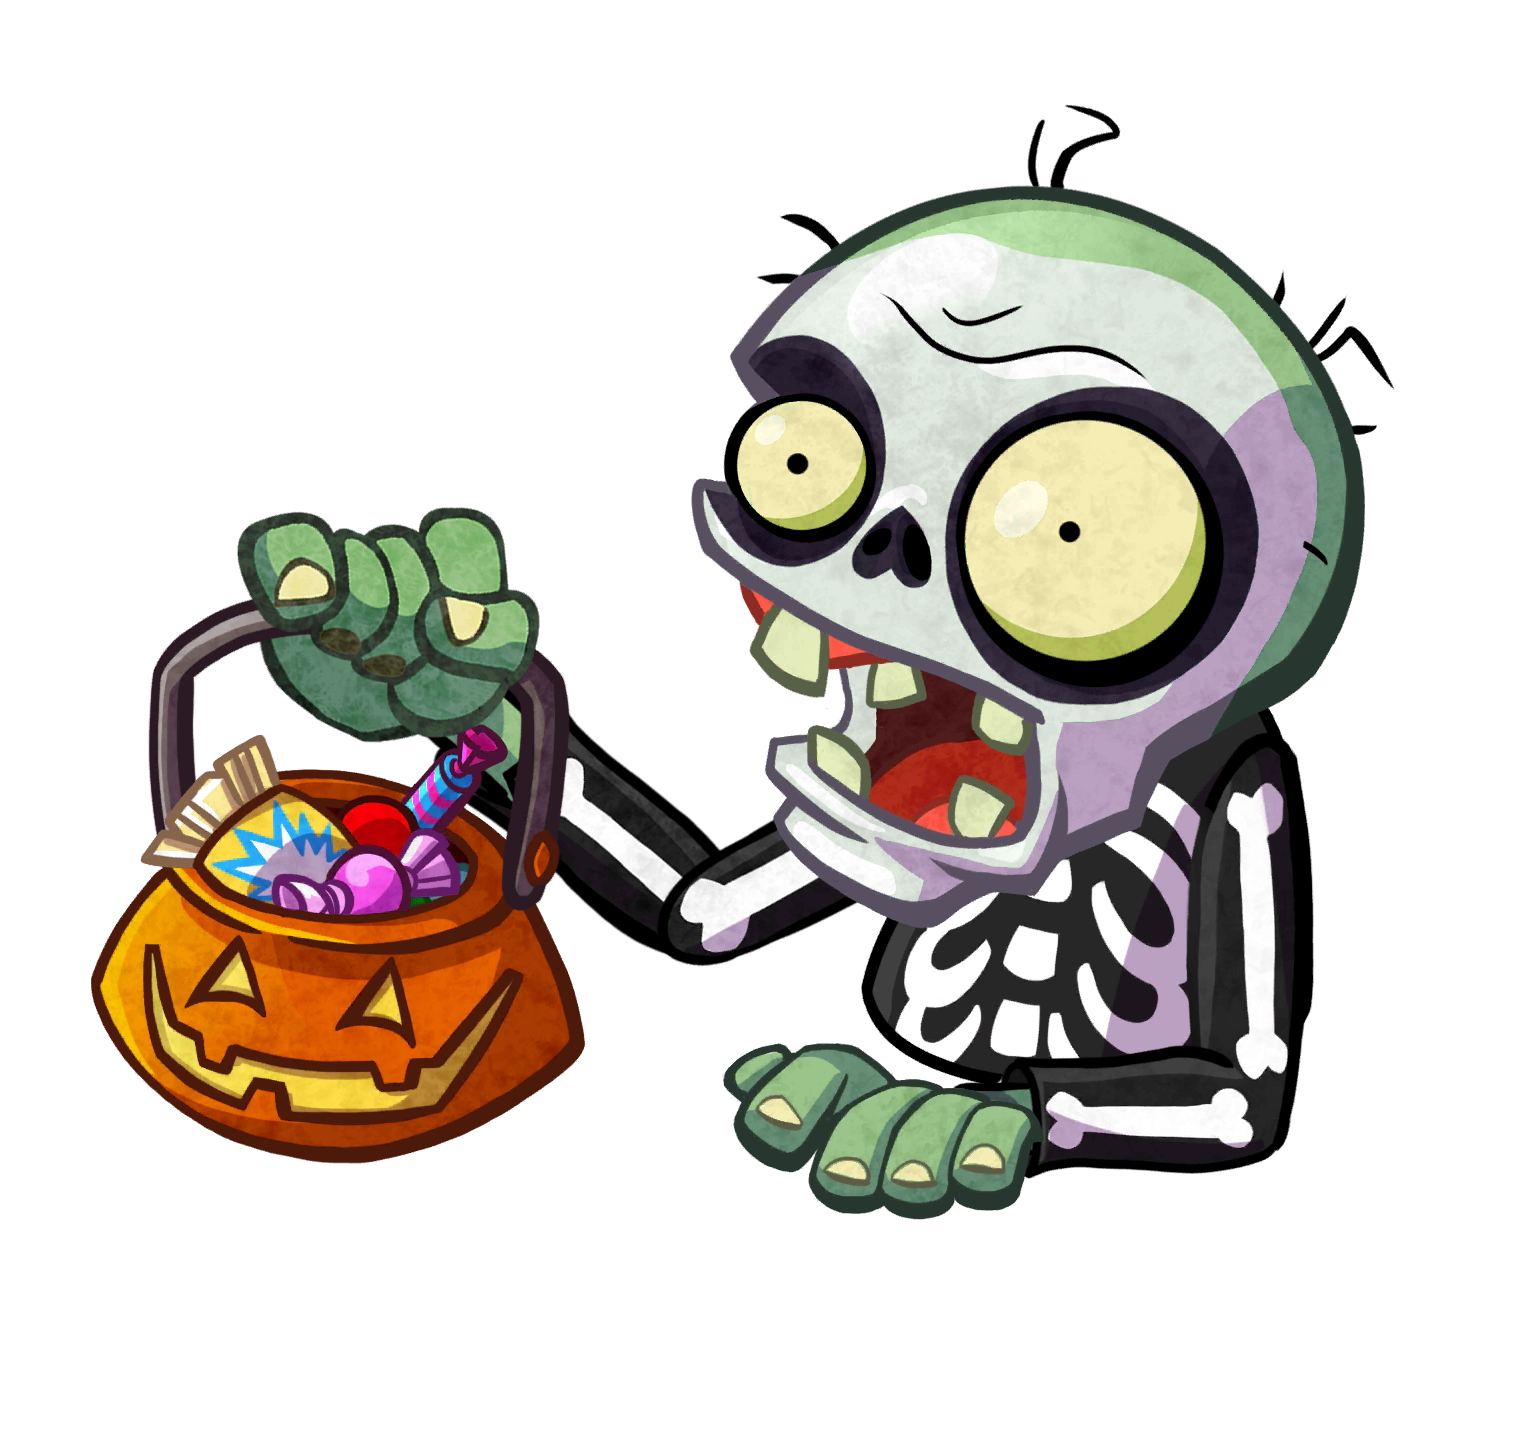 Halloween clipart trick or treaters svg freeuse Trick-or-Treater | Plants vs. Zombies Wiki | FANDOM powered by Wikia svg freeuse